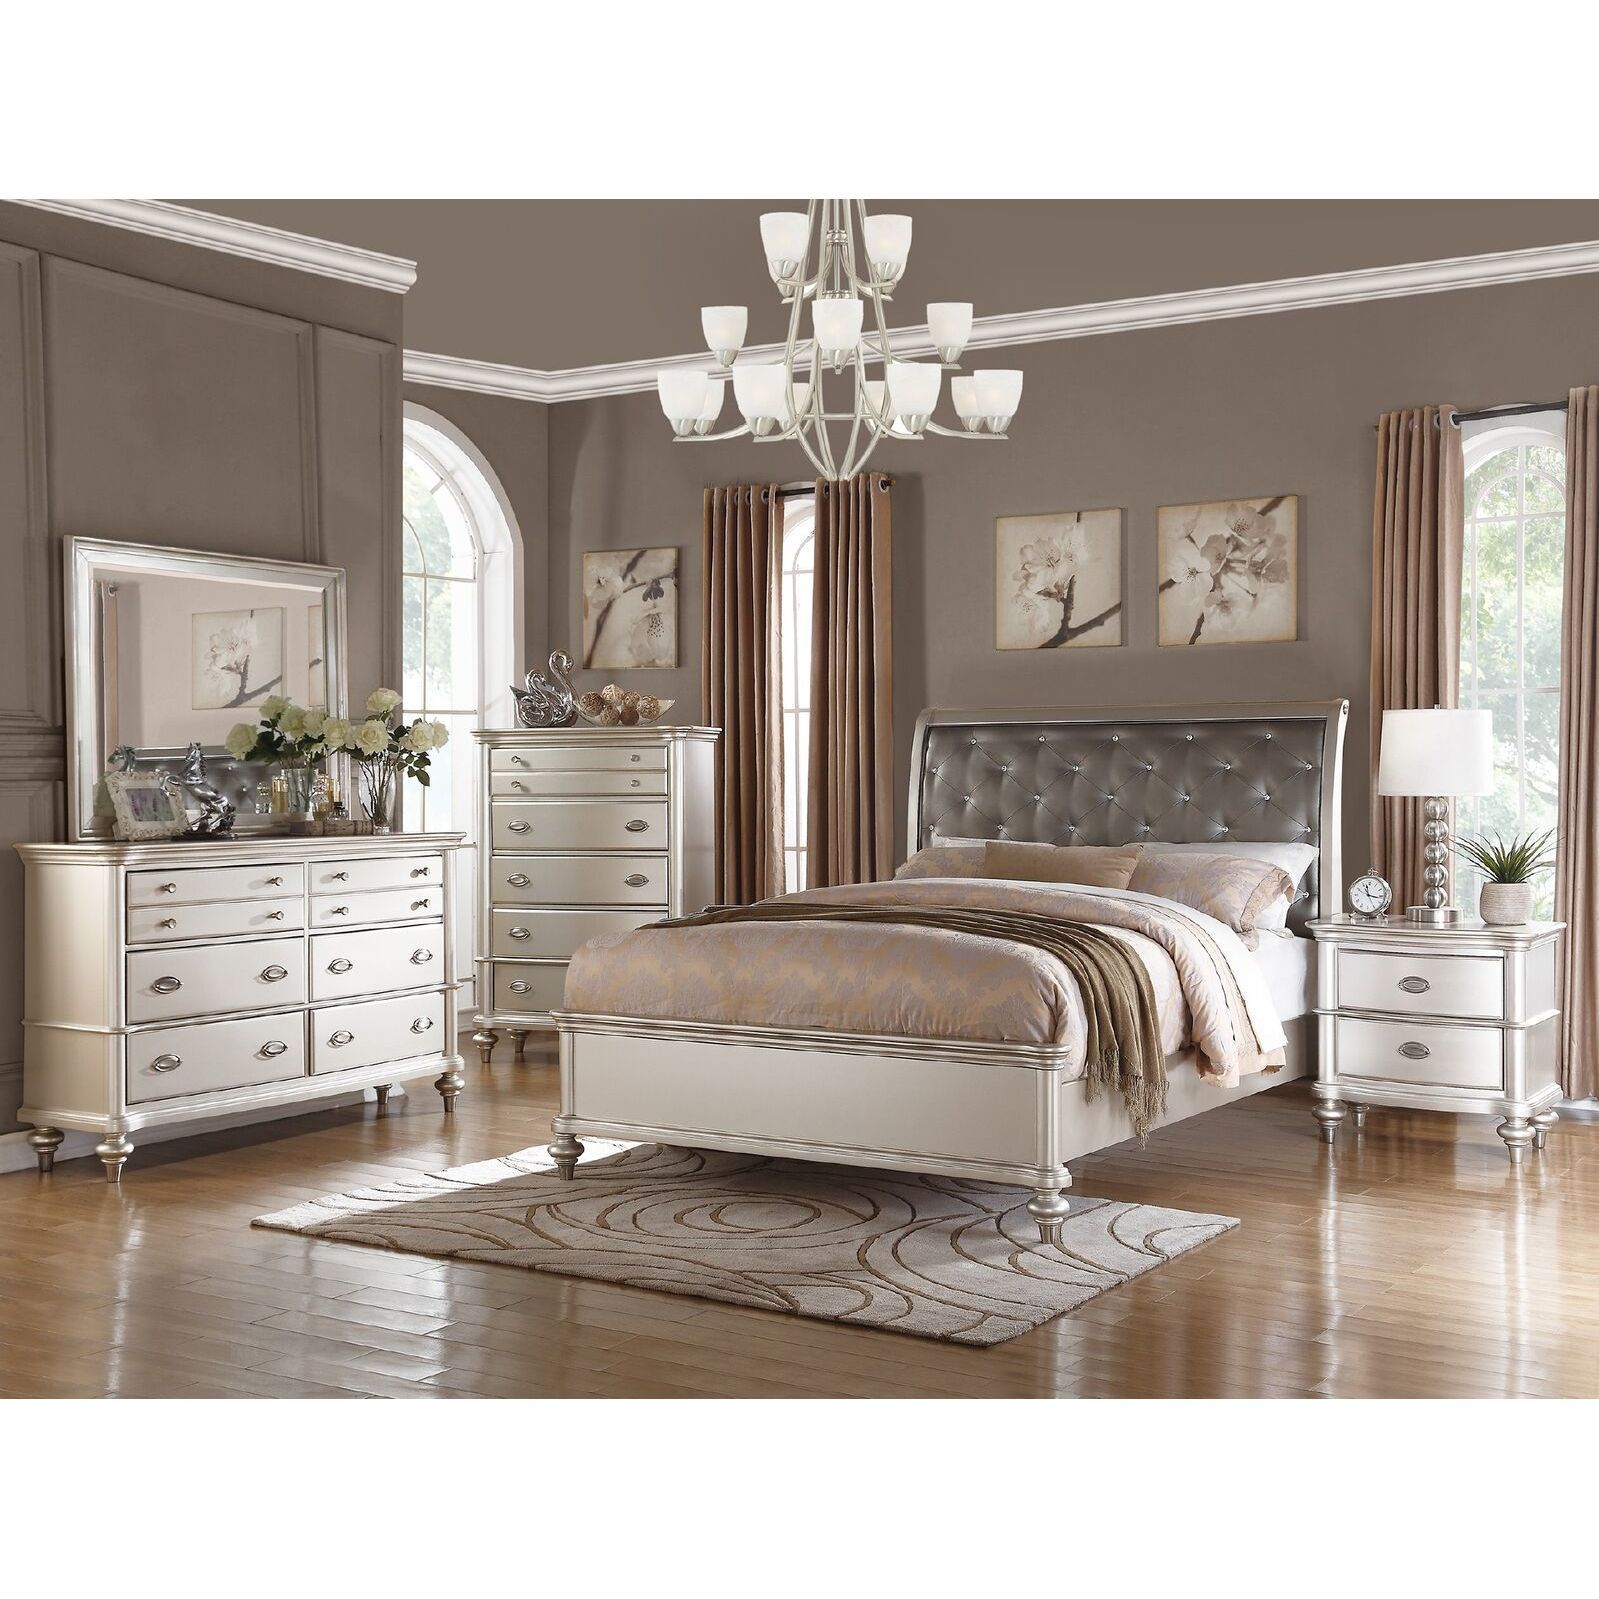 Saveria 4 Piece Bedroom Set Saveria 4 Piece Queen Bedroom Set